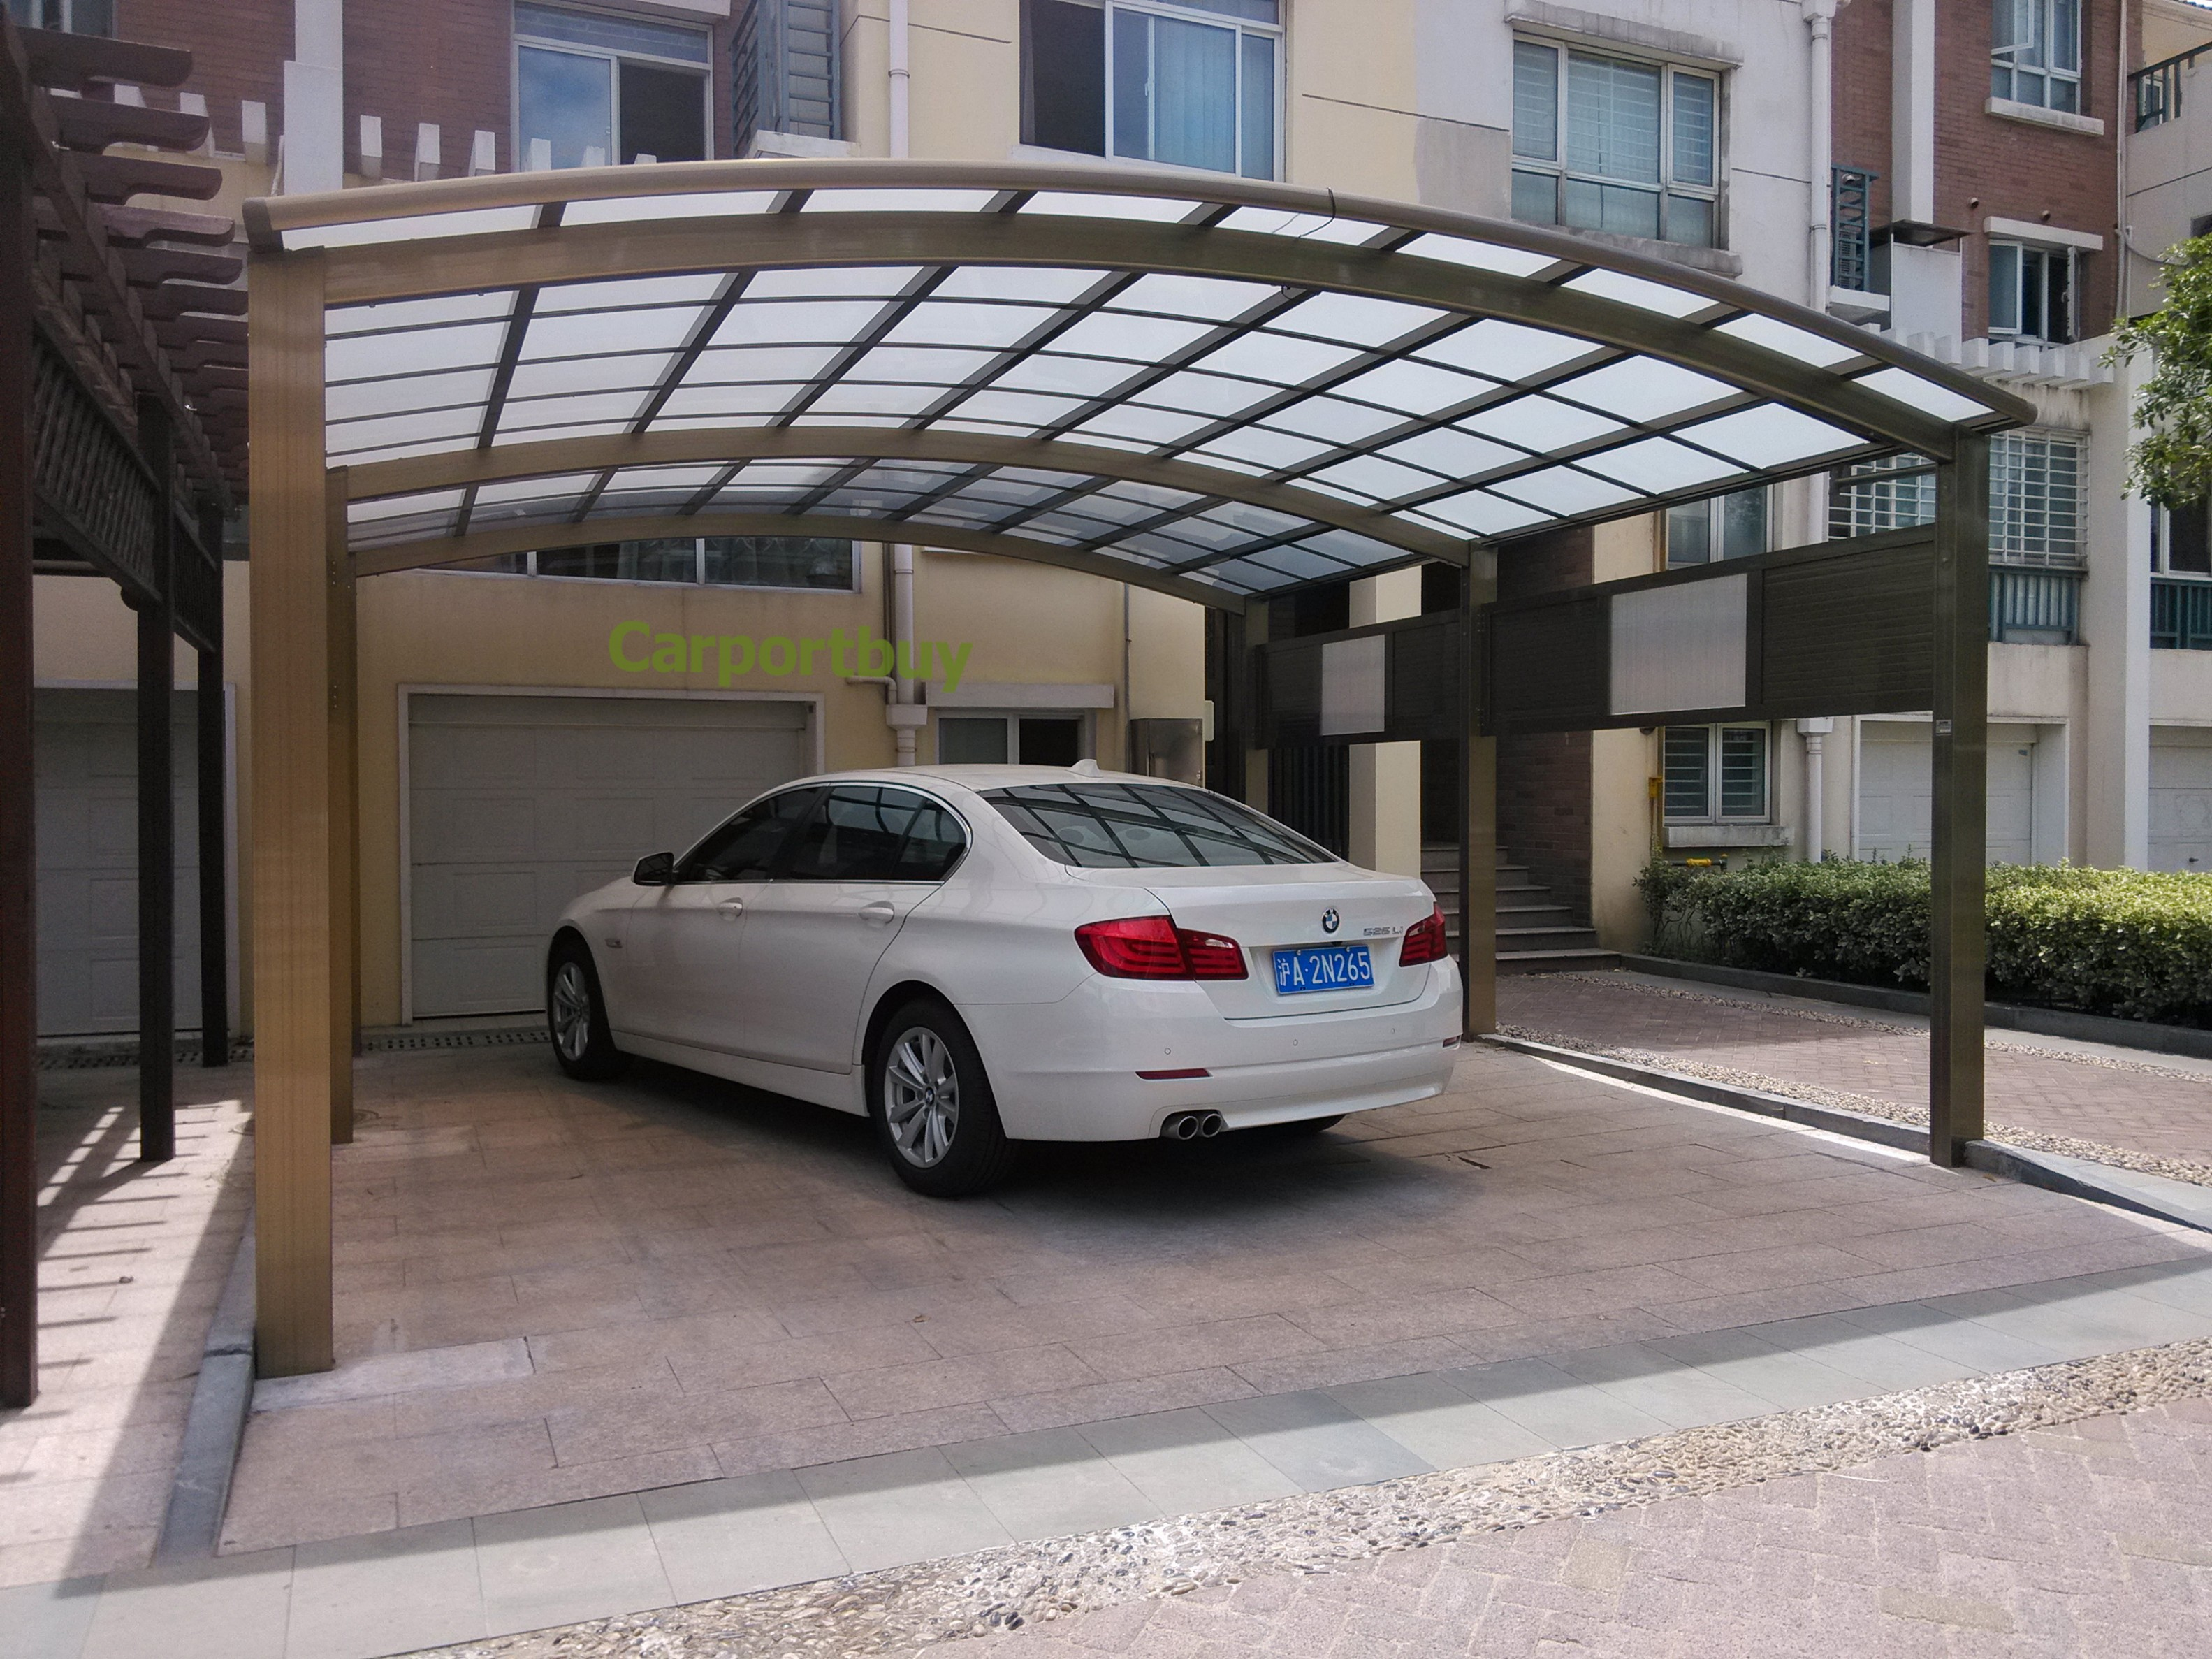 Seven Great Sale Carport Ideas That You Can Share With Your Friends | sale carport